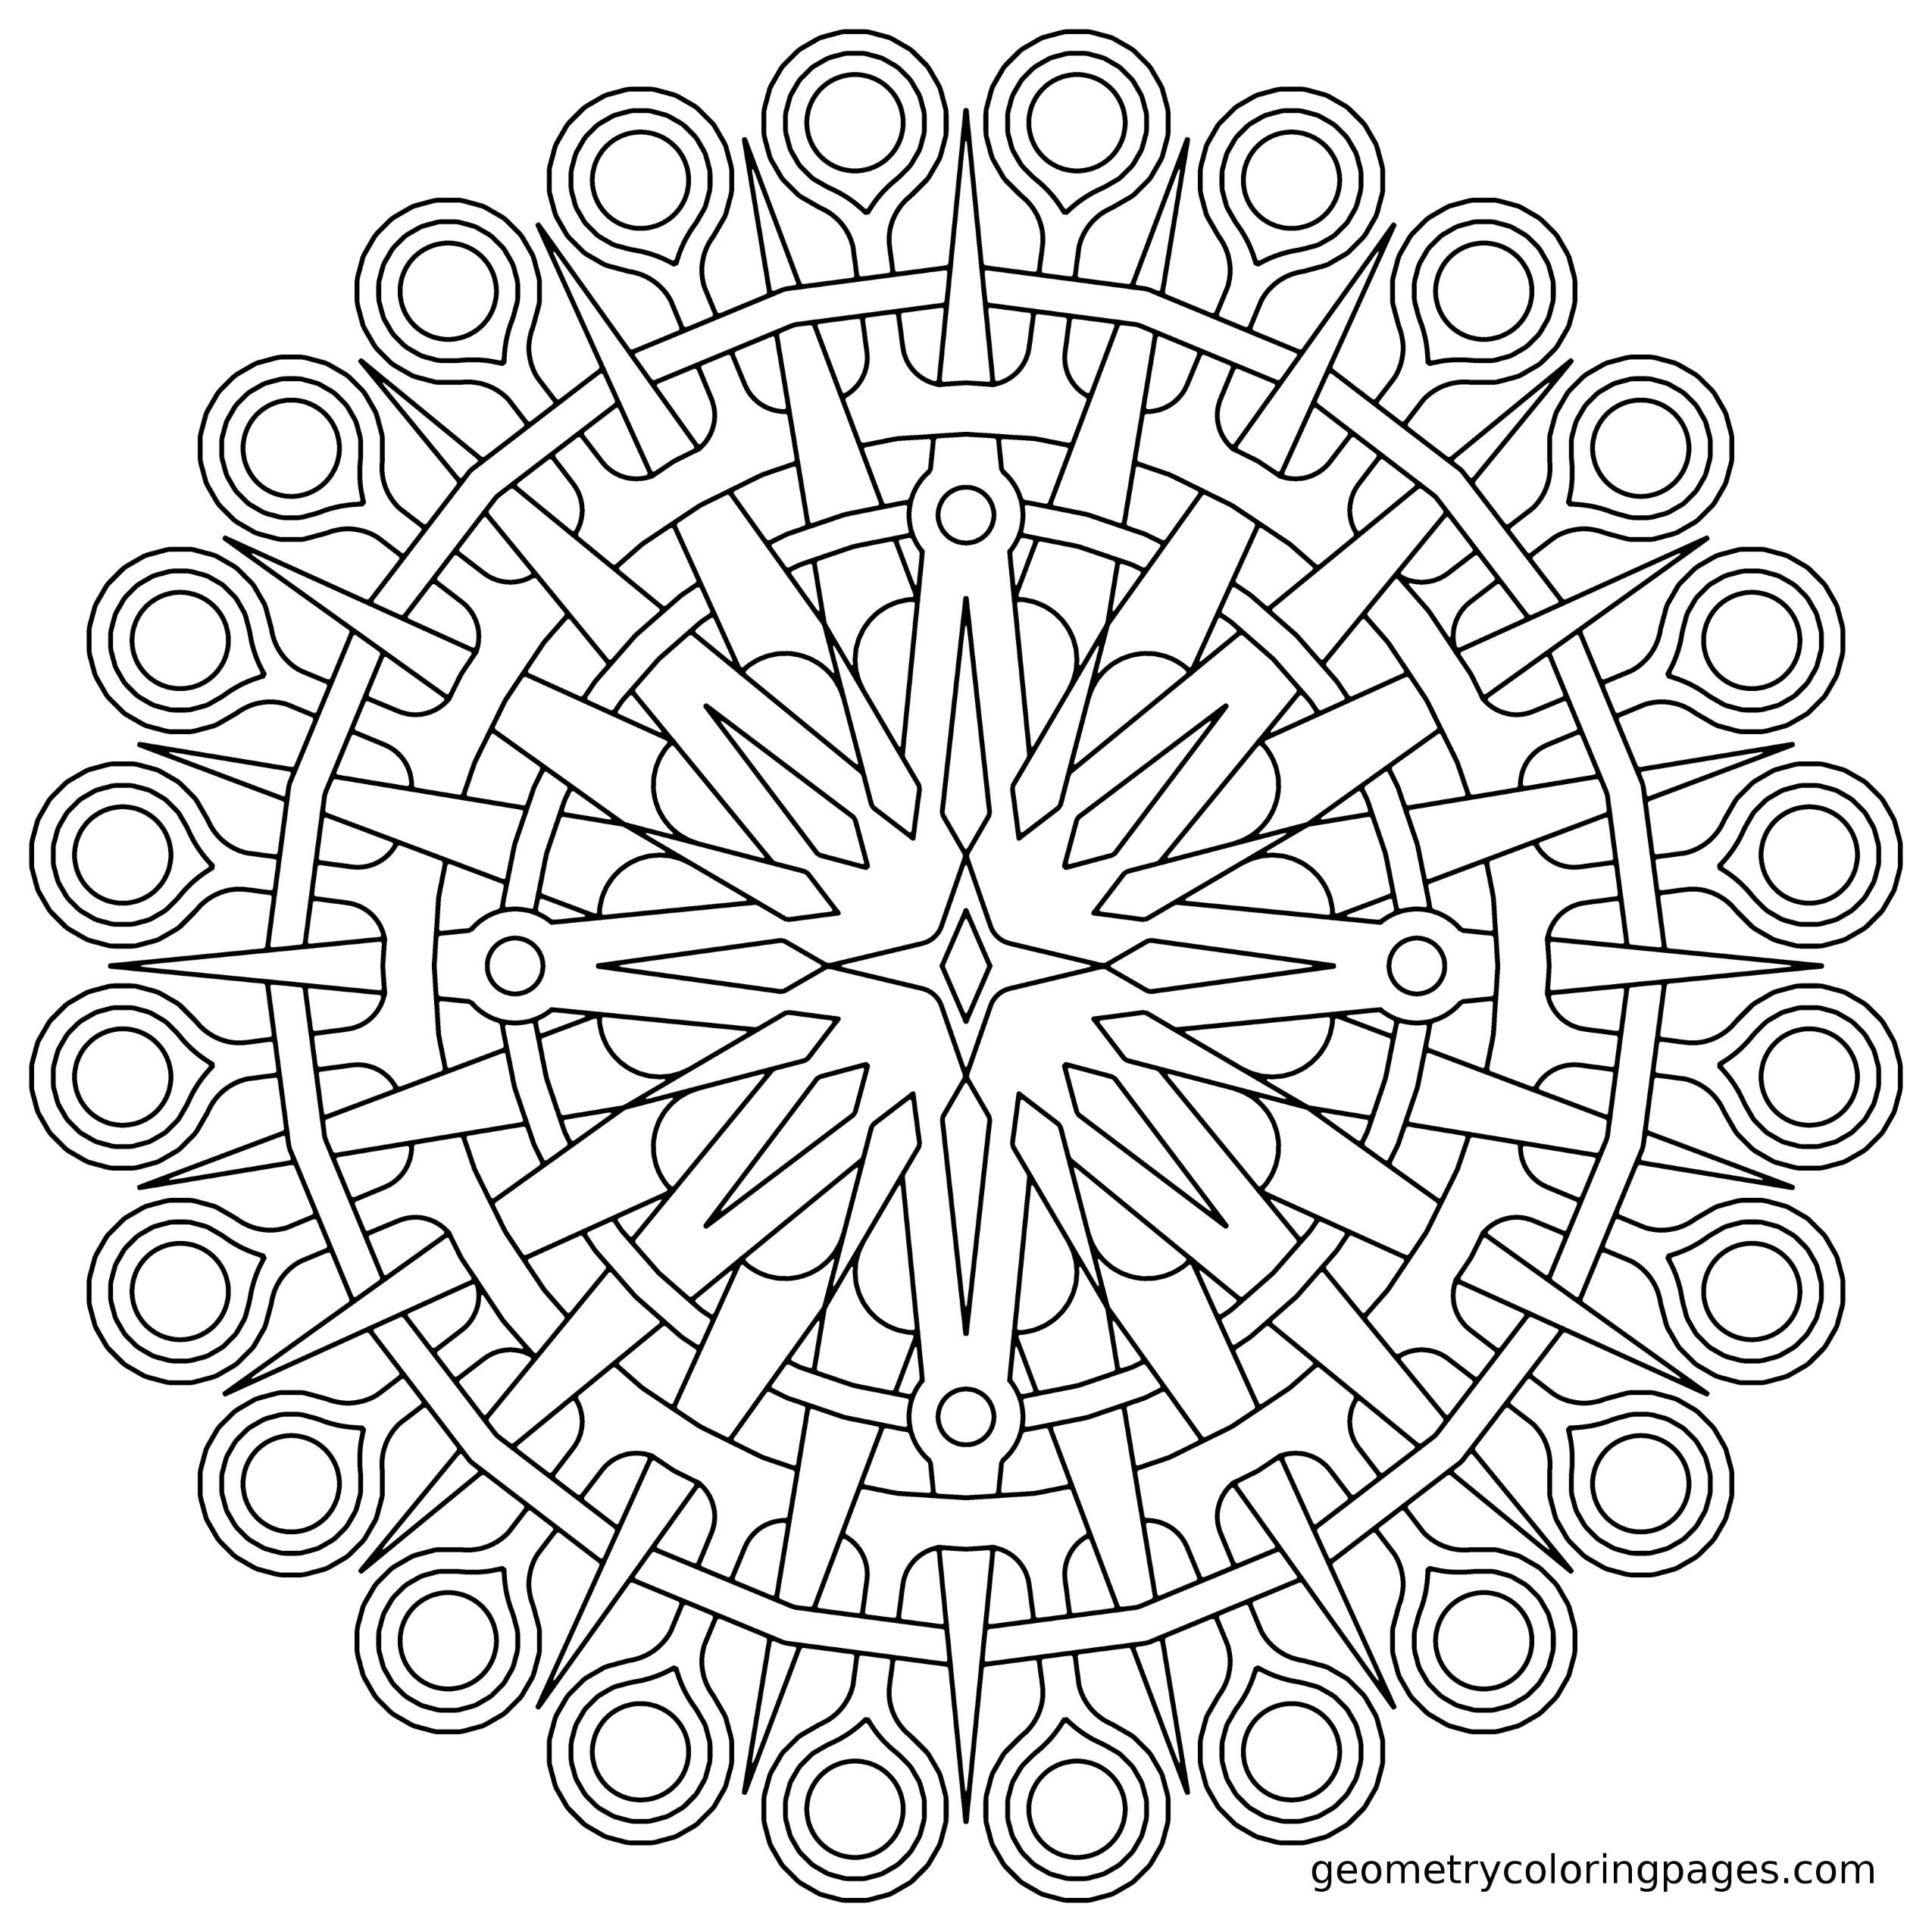 Geometry Coloring Pages Imgur everything else Pinterest